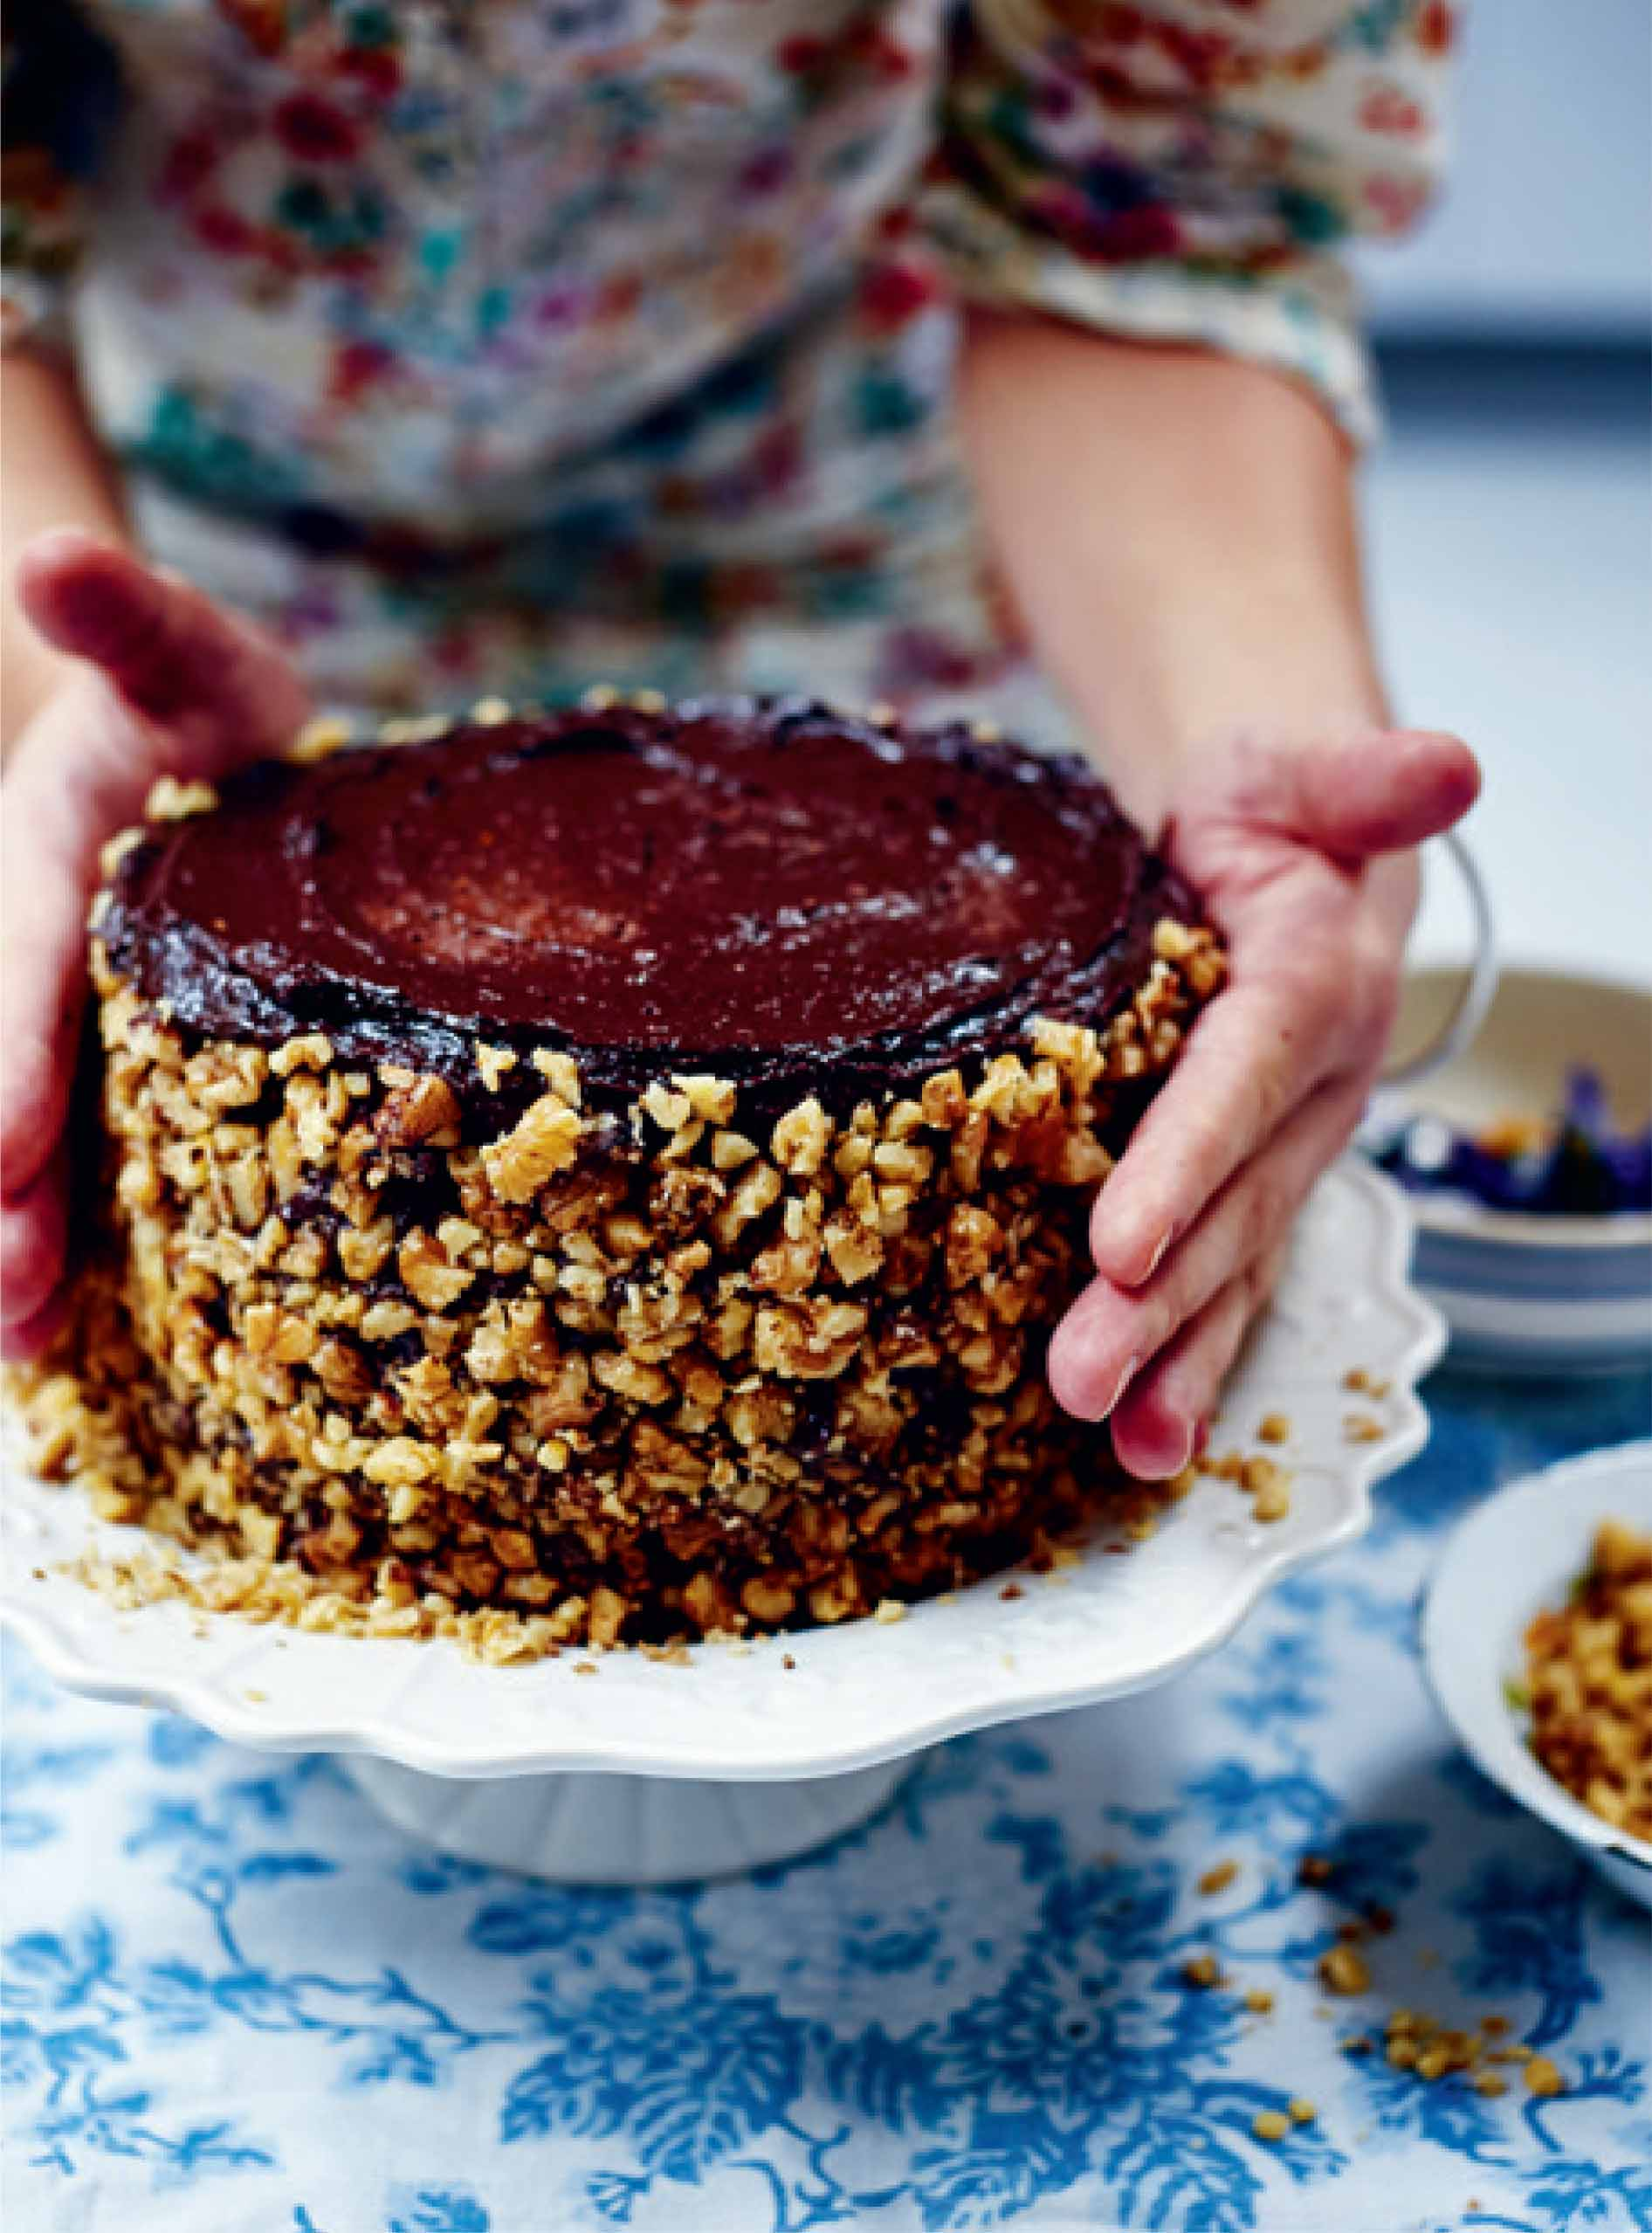 Boozy chocolate and walnut torte